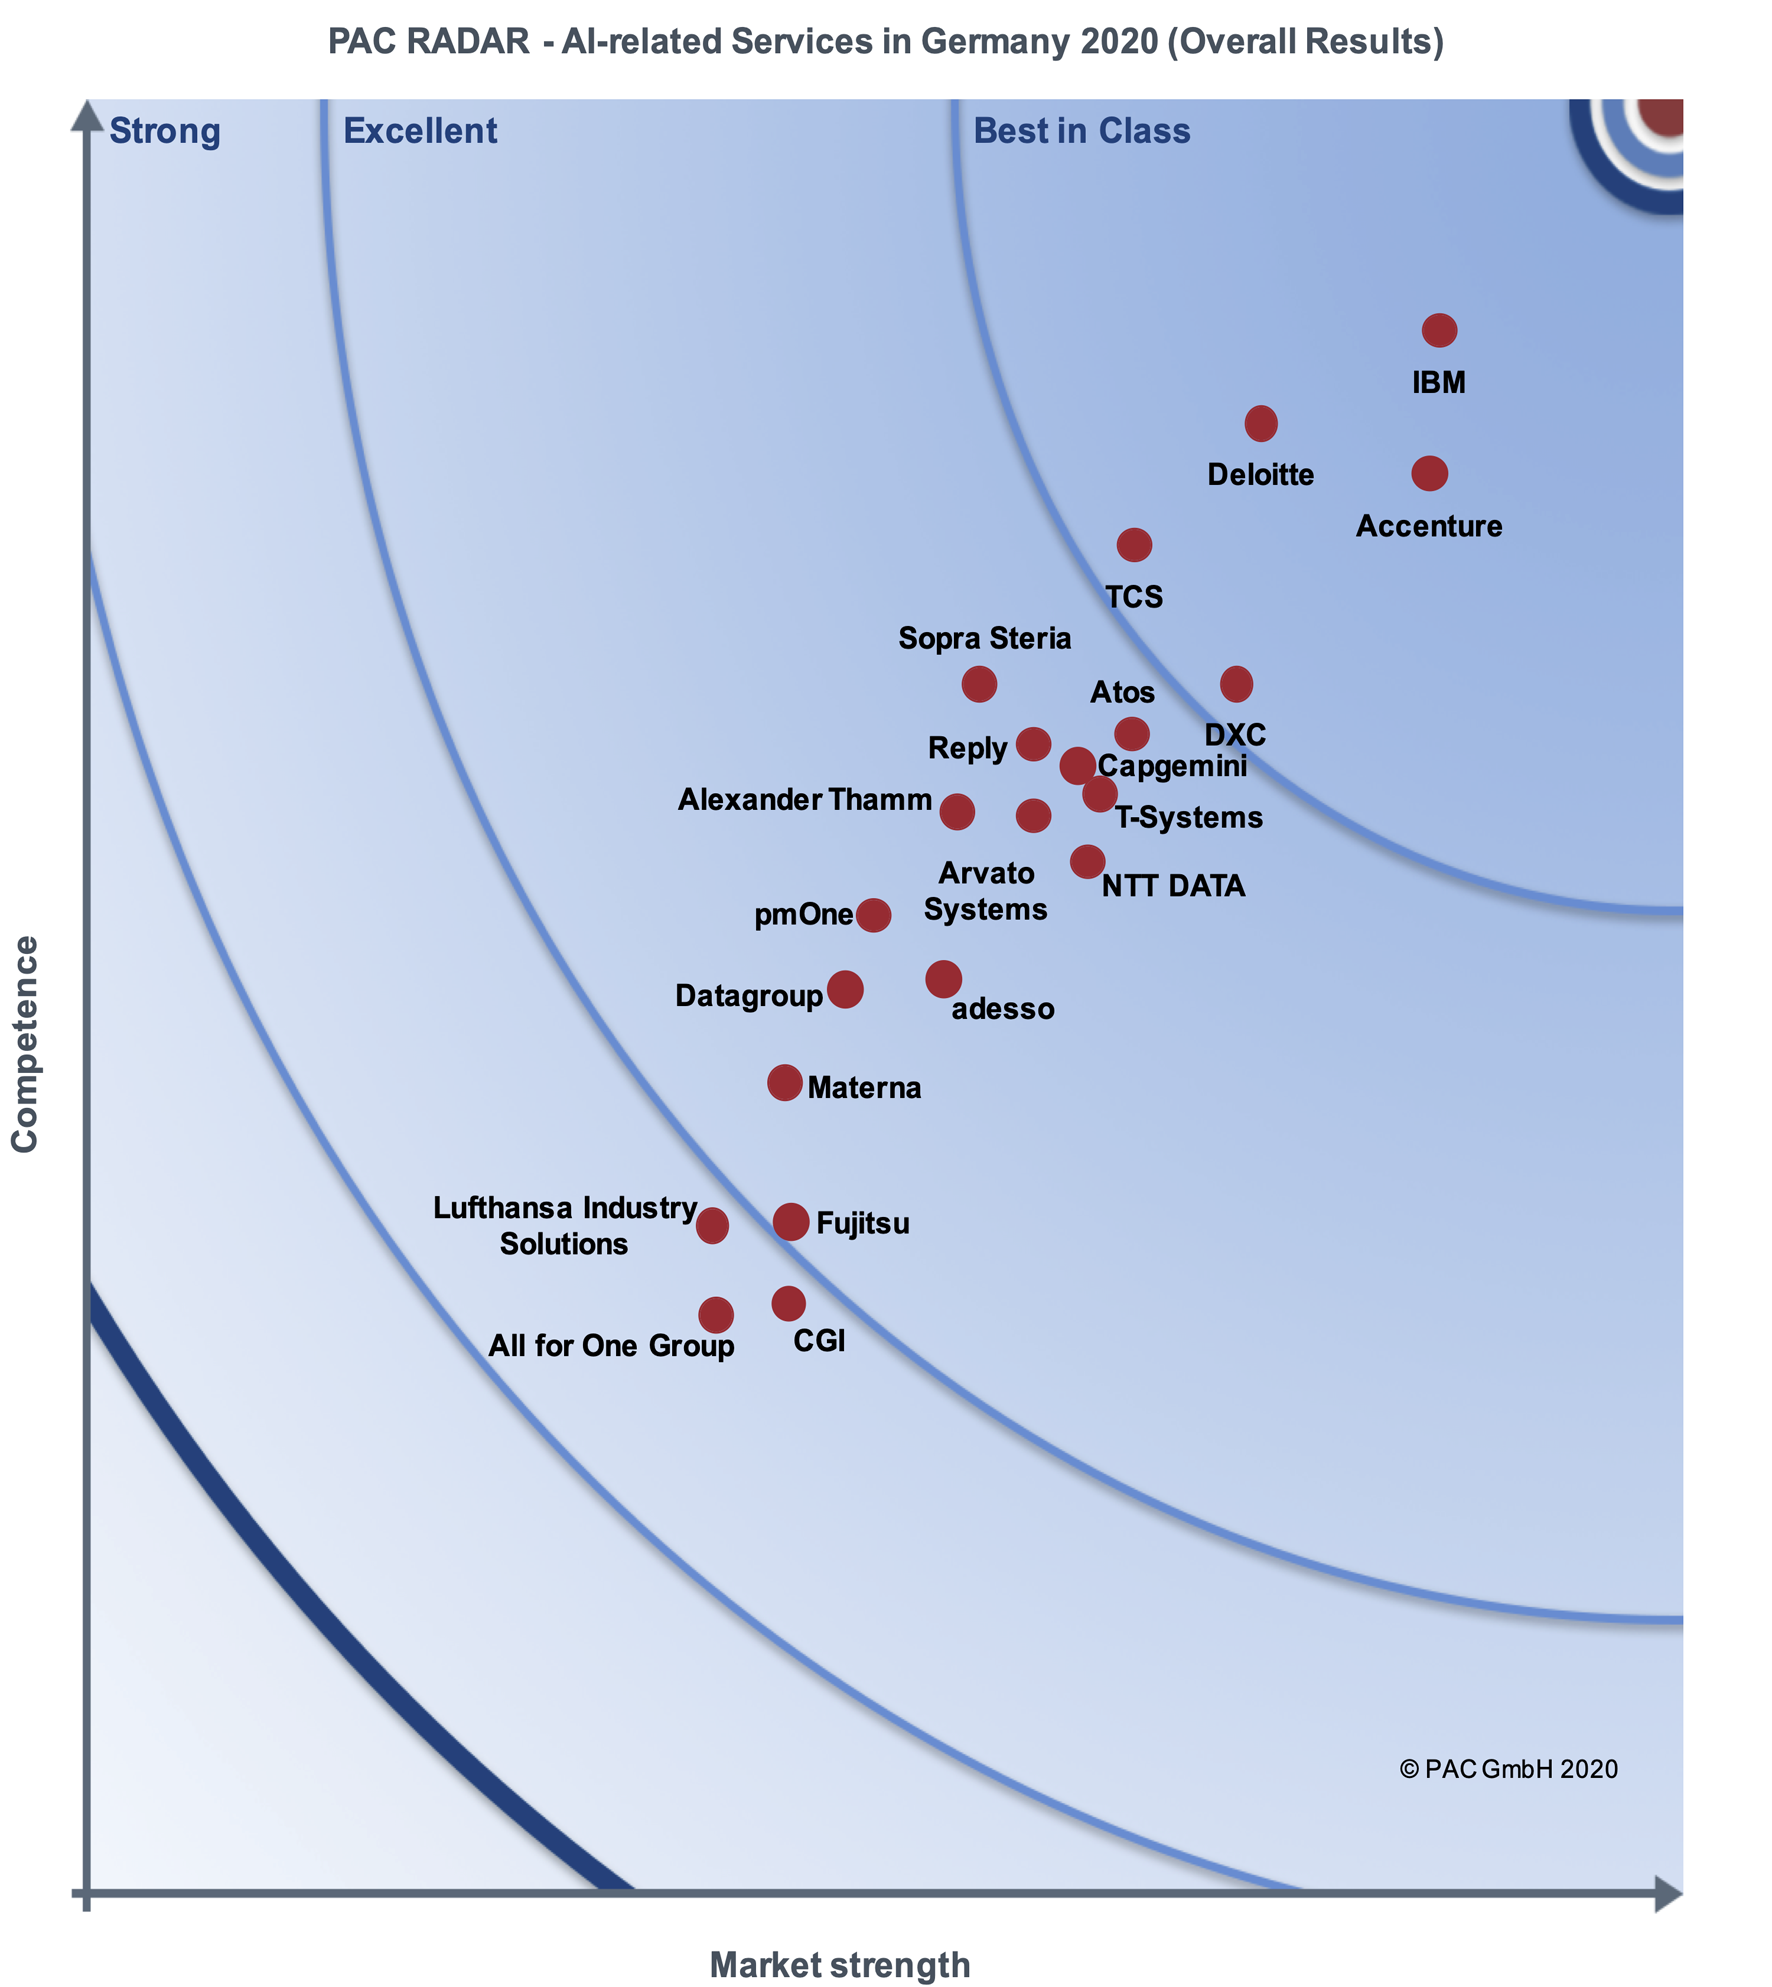 "PAC INNOVATION RADAR ""AI-related Services in Germany 2020 – Overall Results"", PAC, 2020"